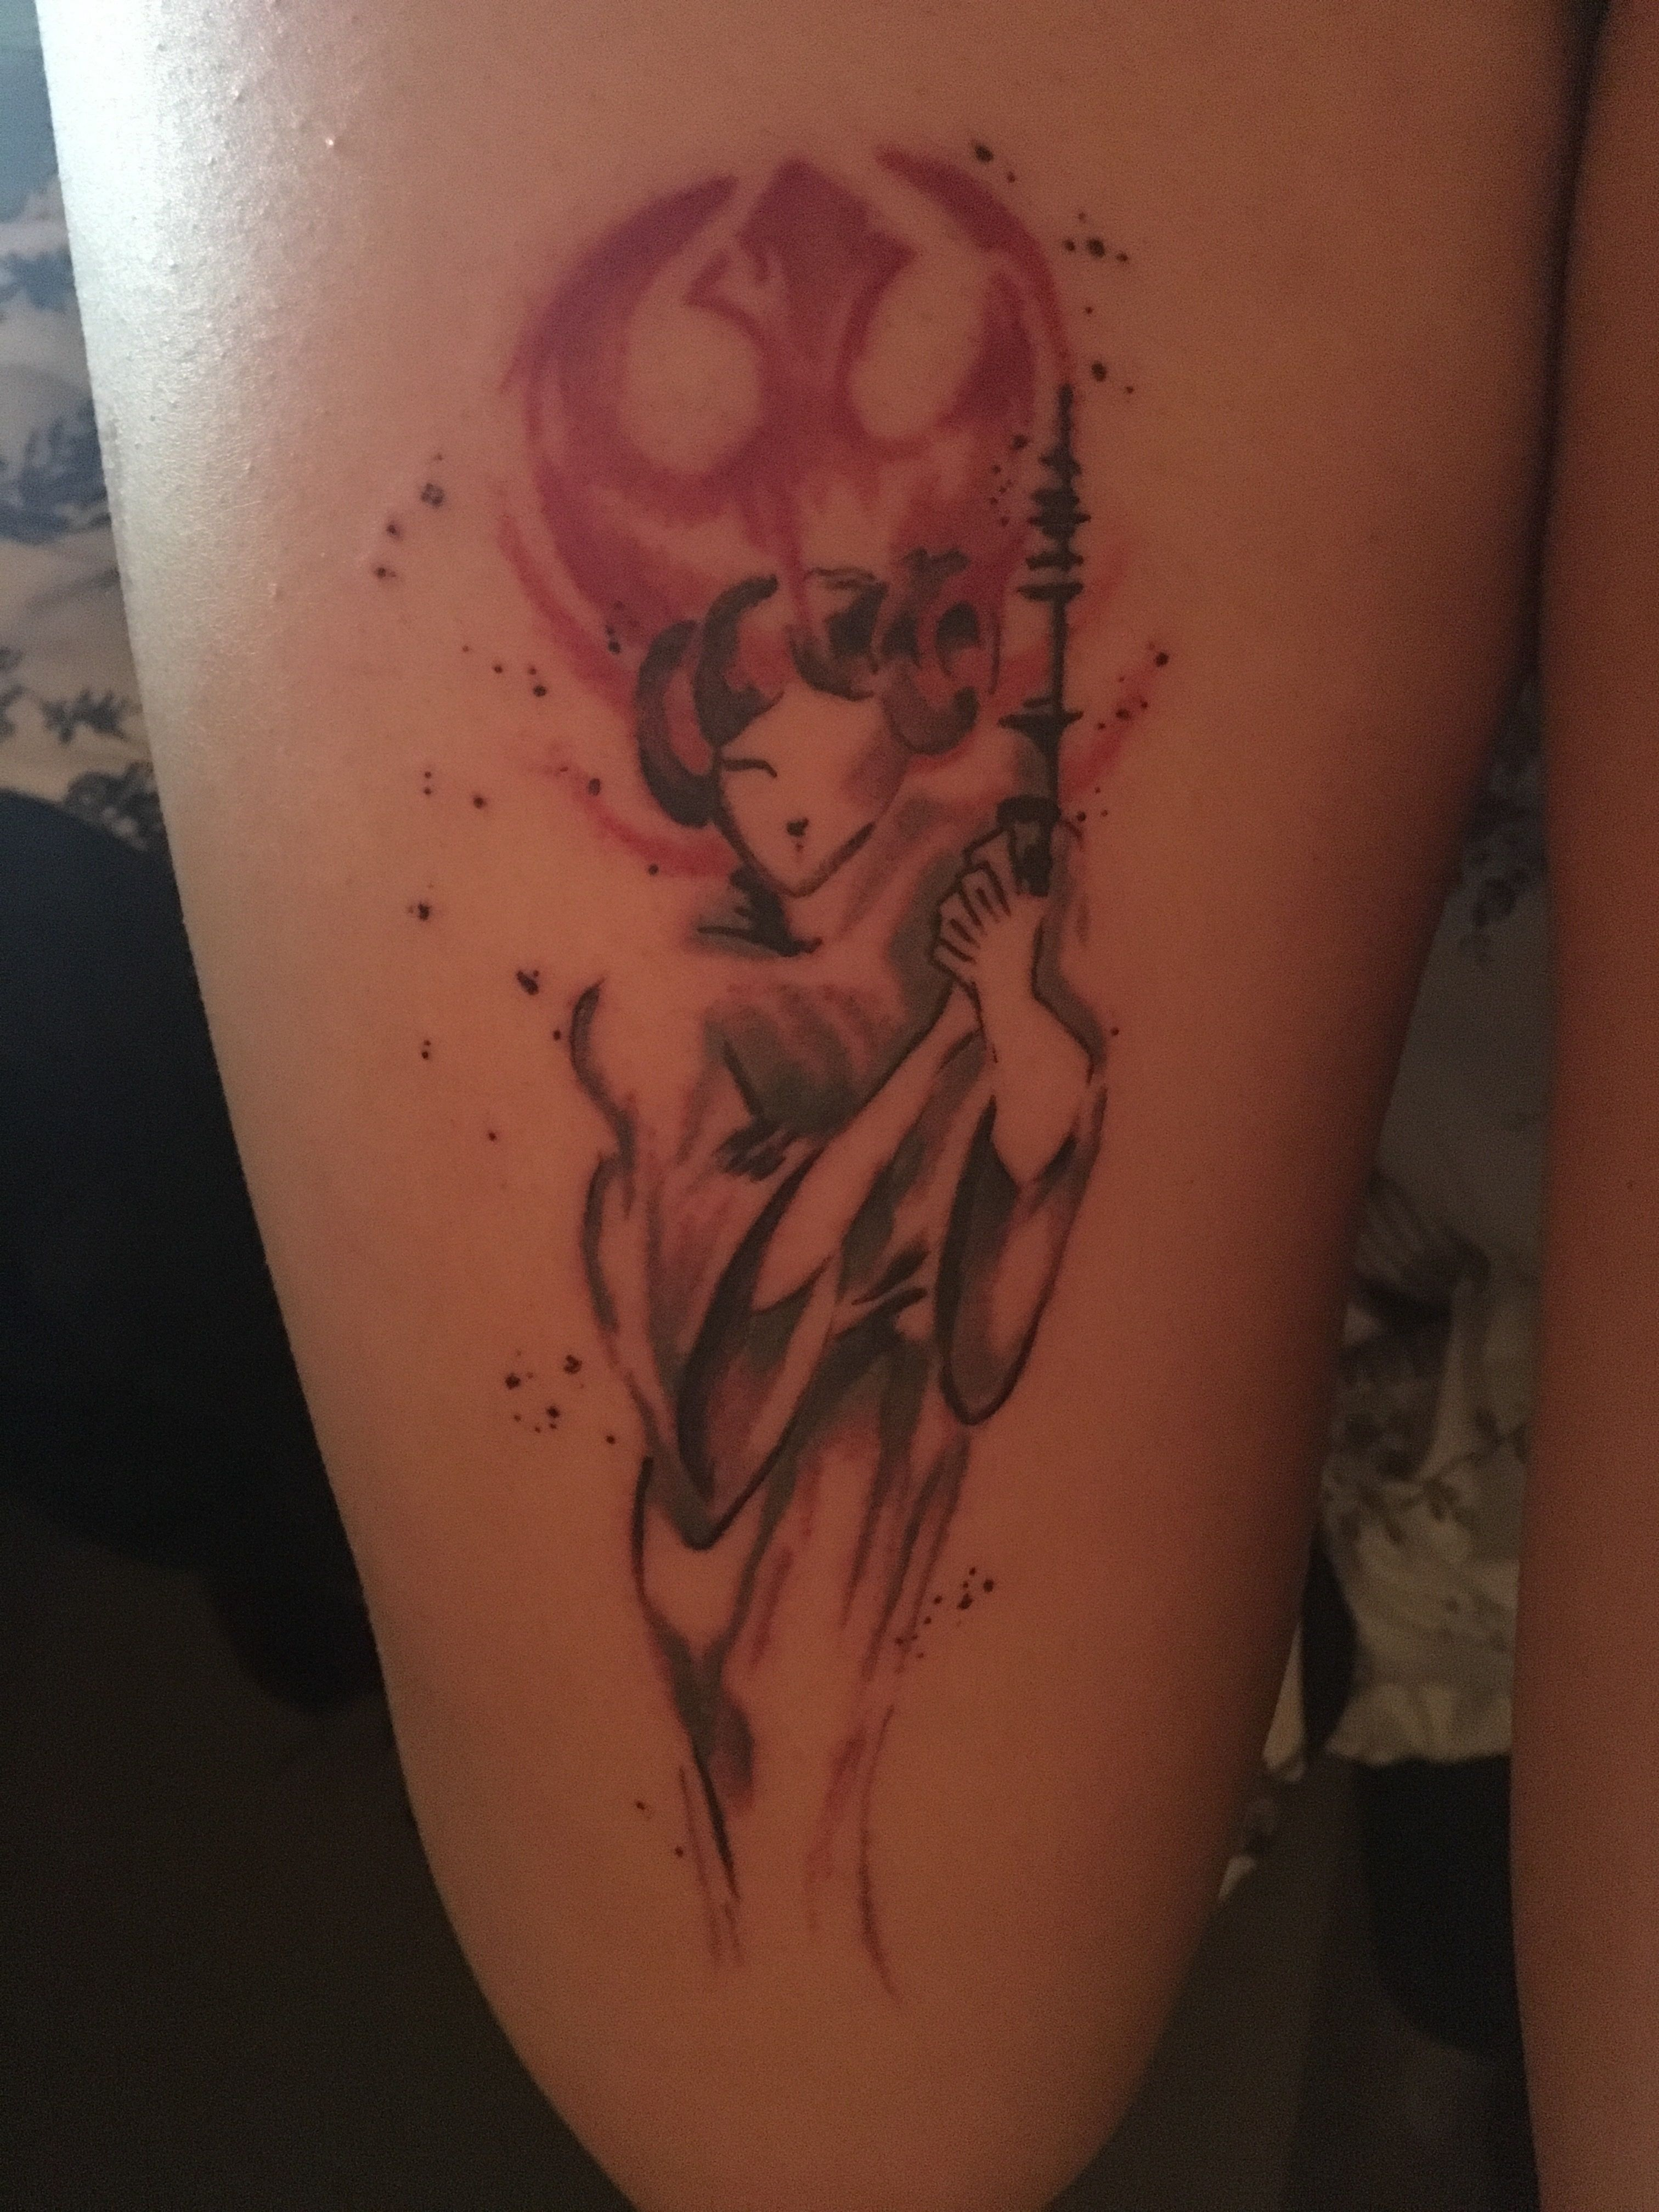 875a58e22 This Princess Leia tattoo that I got is everything to me . Rip Carrie  Fisher, you'll always be with me.